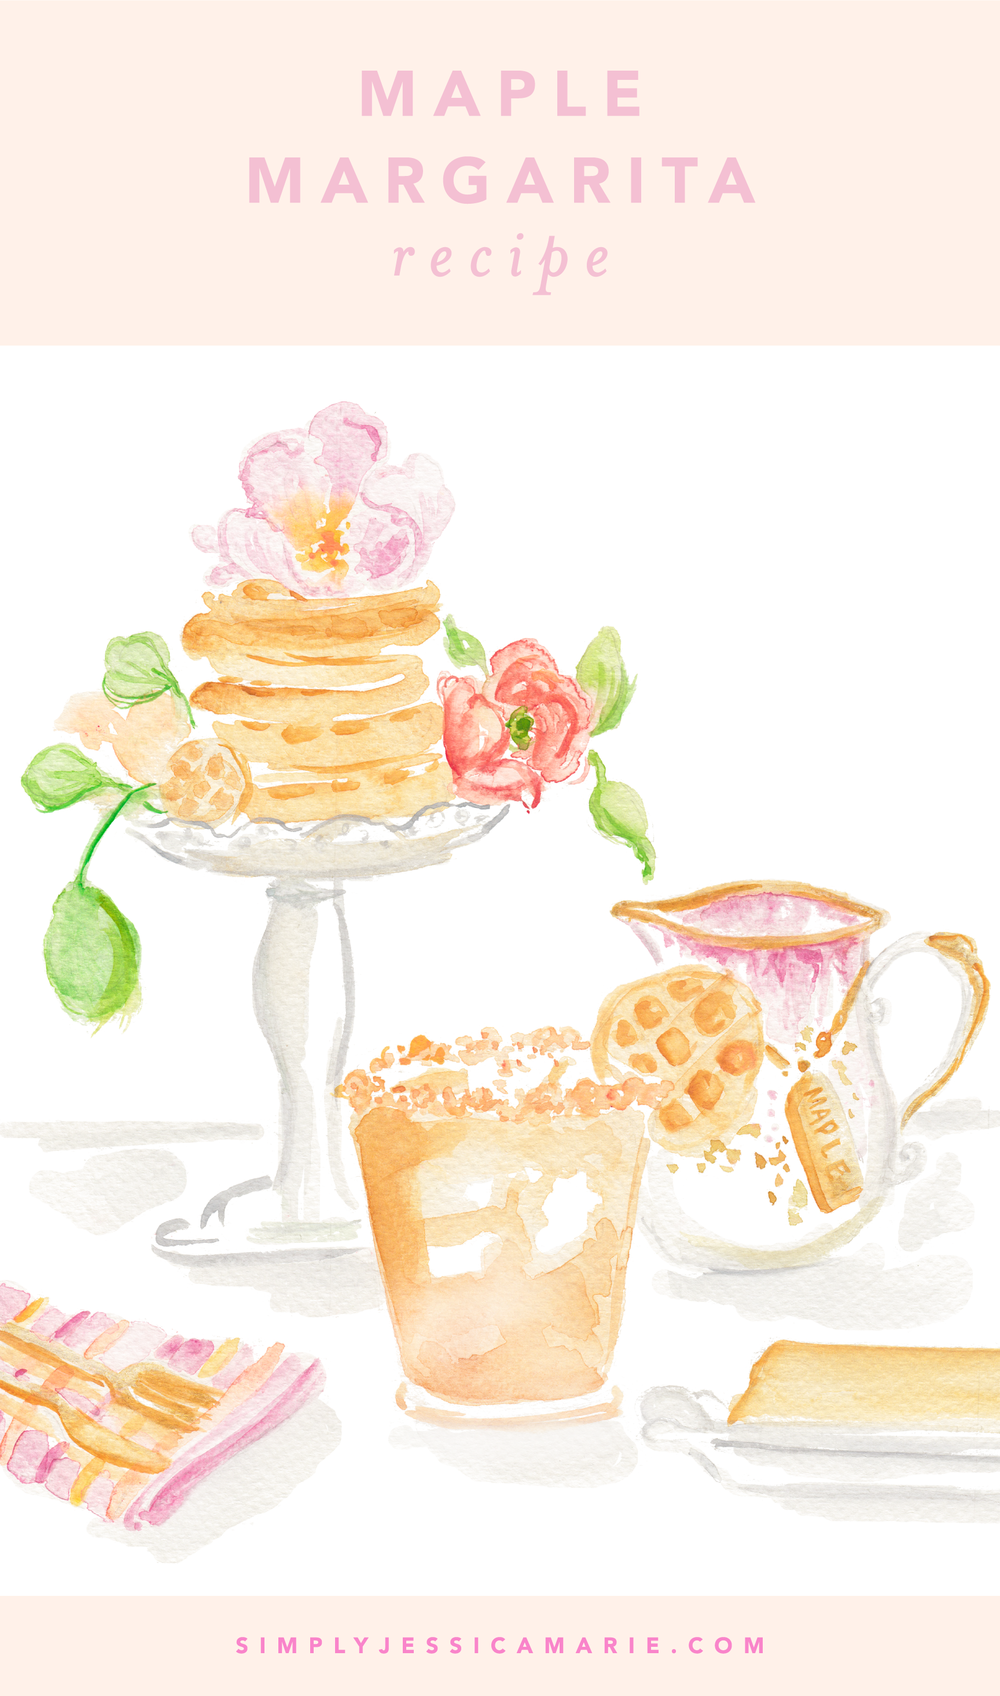 Maple Margarita Recipe   Watercolor Cocktail Painting by Simply Jessica Marie   SJM 2018 Cocktail Calendar